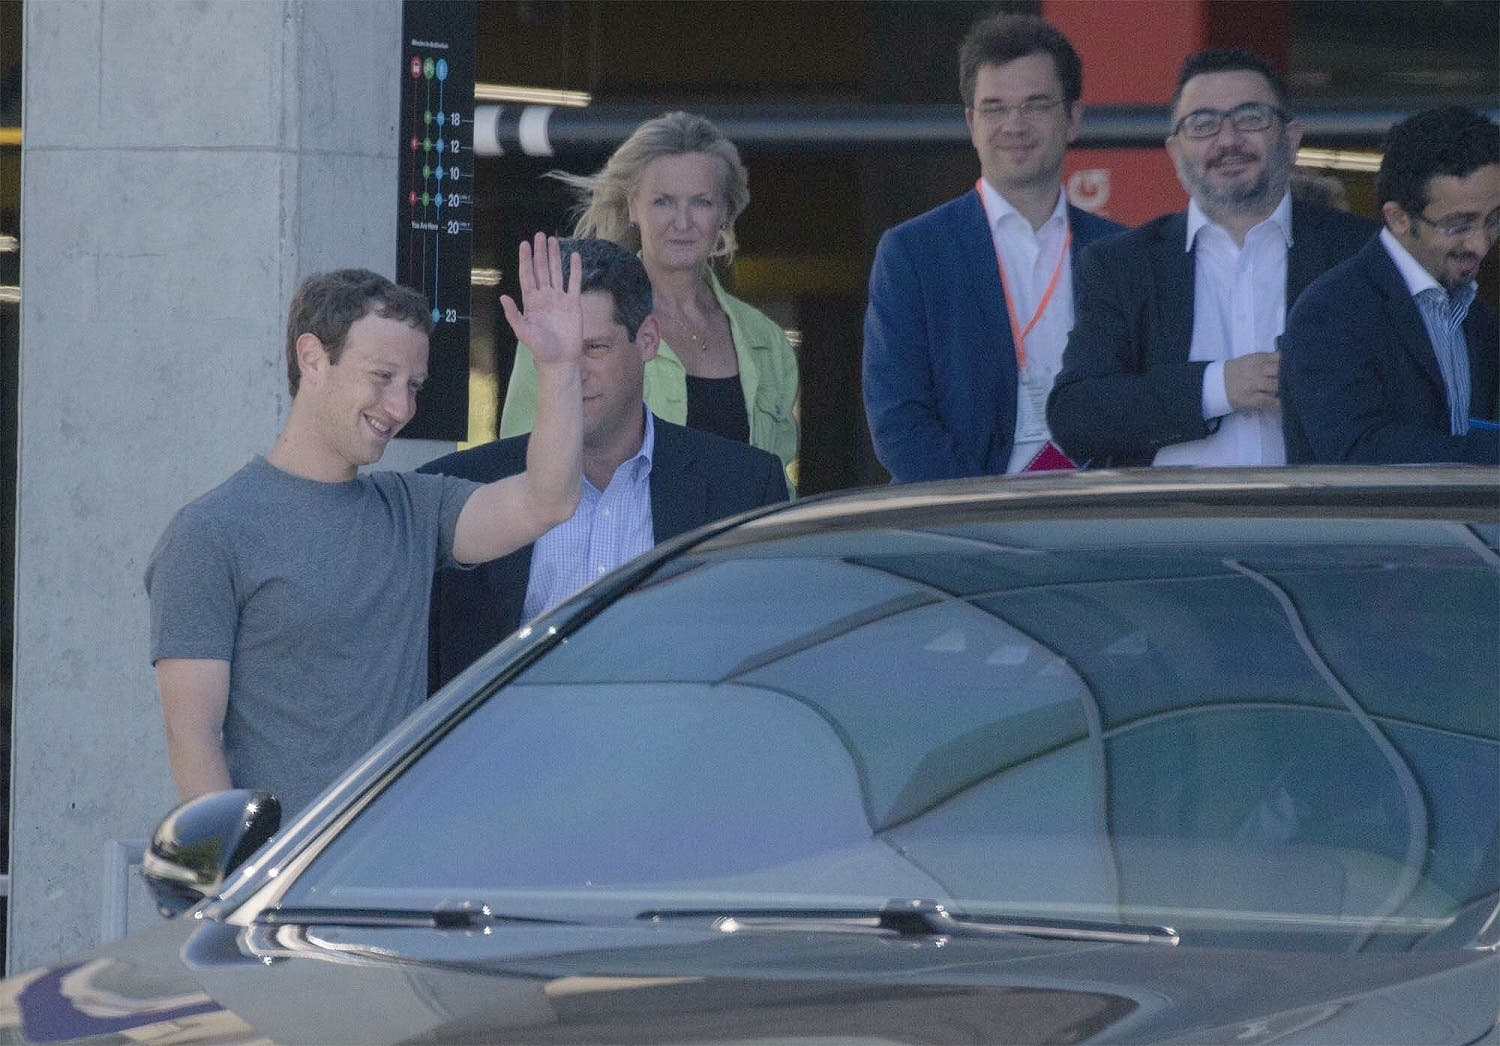 Facebook founder Mark Zuckerberg waves off Saudi Deputy Crown Prince Mohammed bin Salman after a meeting between the two at the tech giant's headquarters in Silicon Valley (Exclusive images by Bandar al-Galoud)